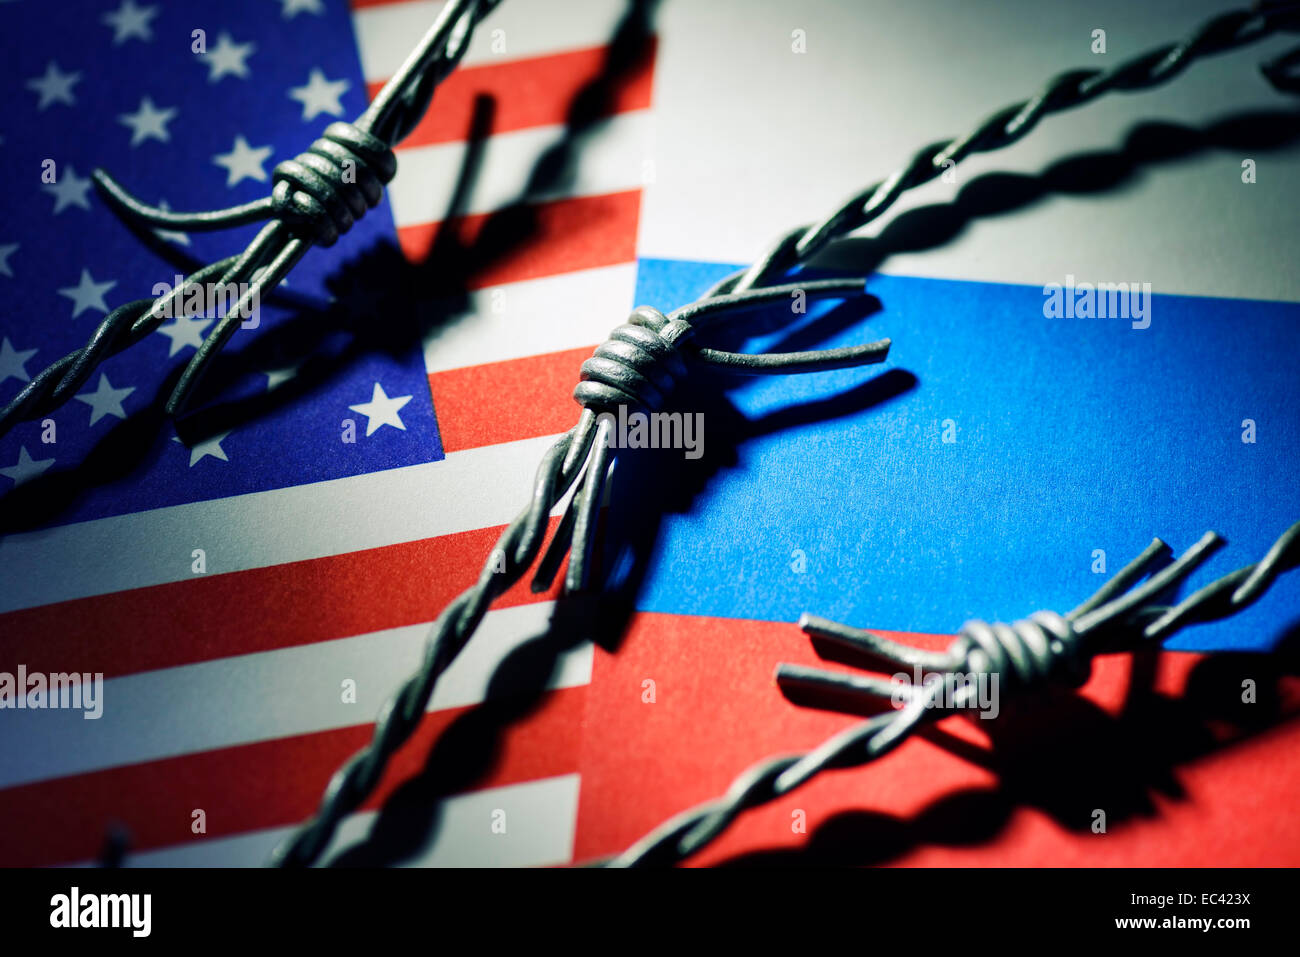 Flags of the USA and Russia with barbwire, cold war - Stock Image